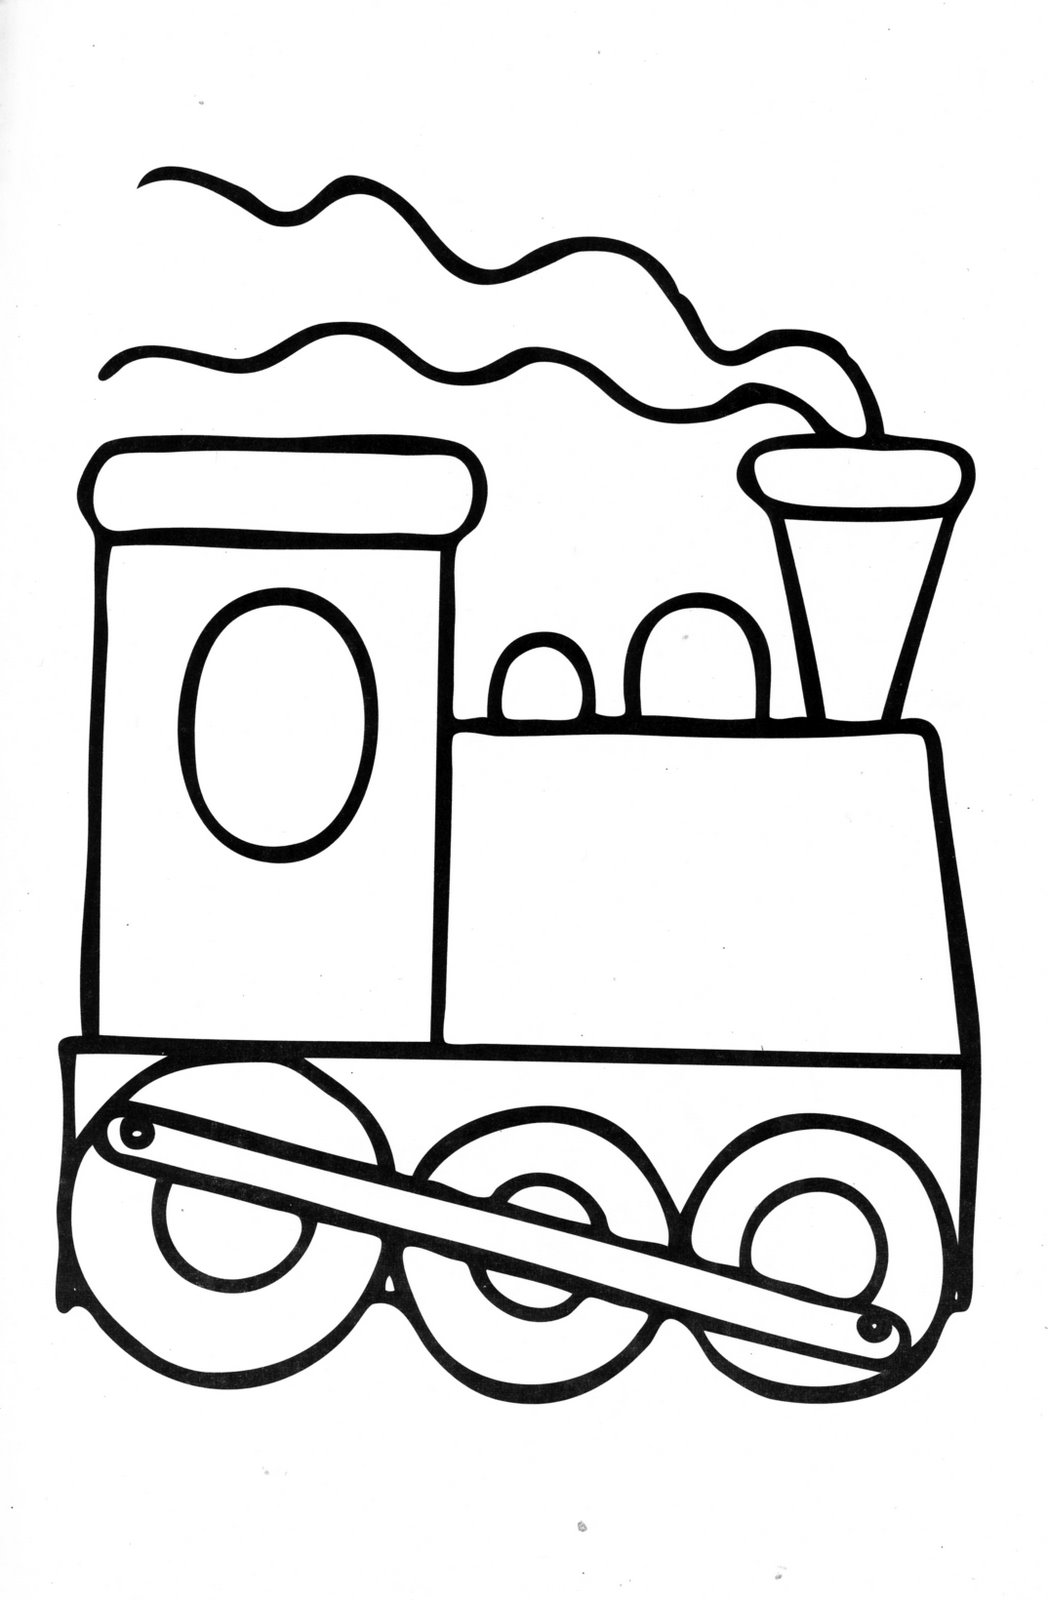 train engine coloring page streamlined diesel engine train on railroad coloring page engine page train coloring